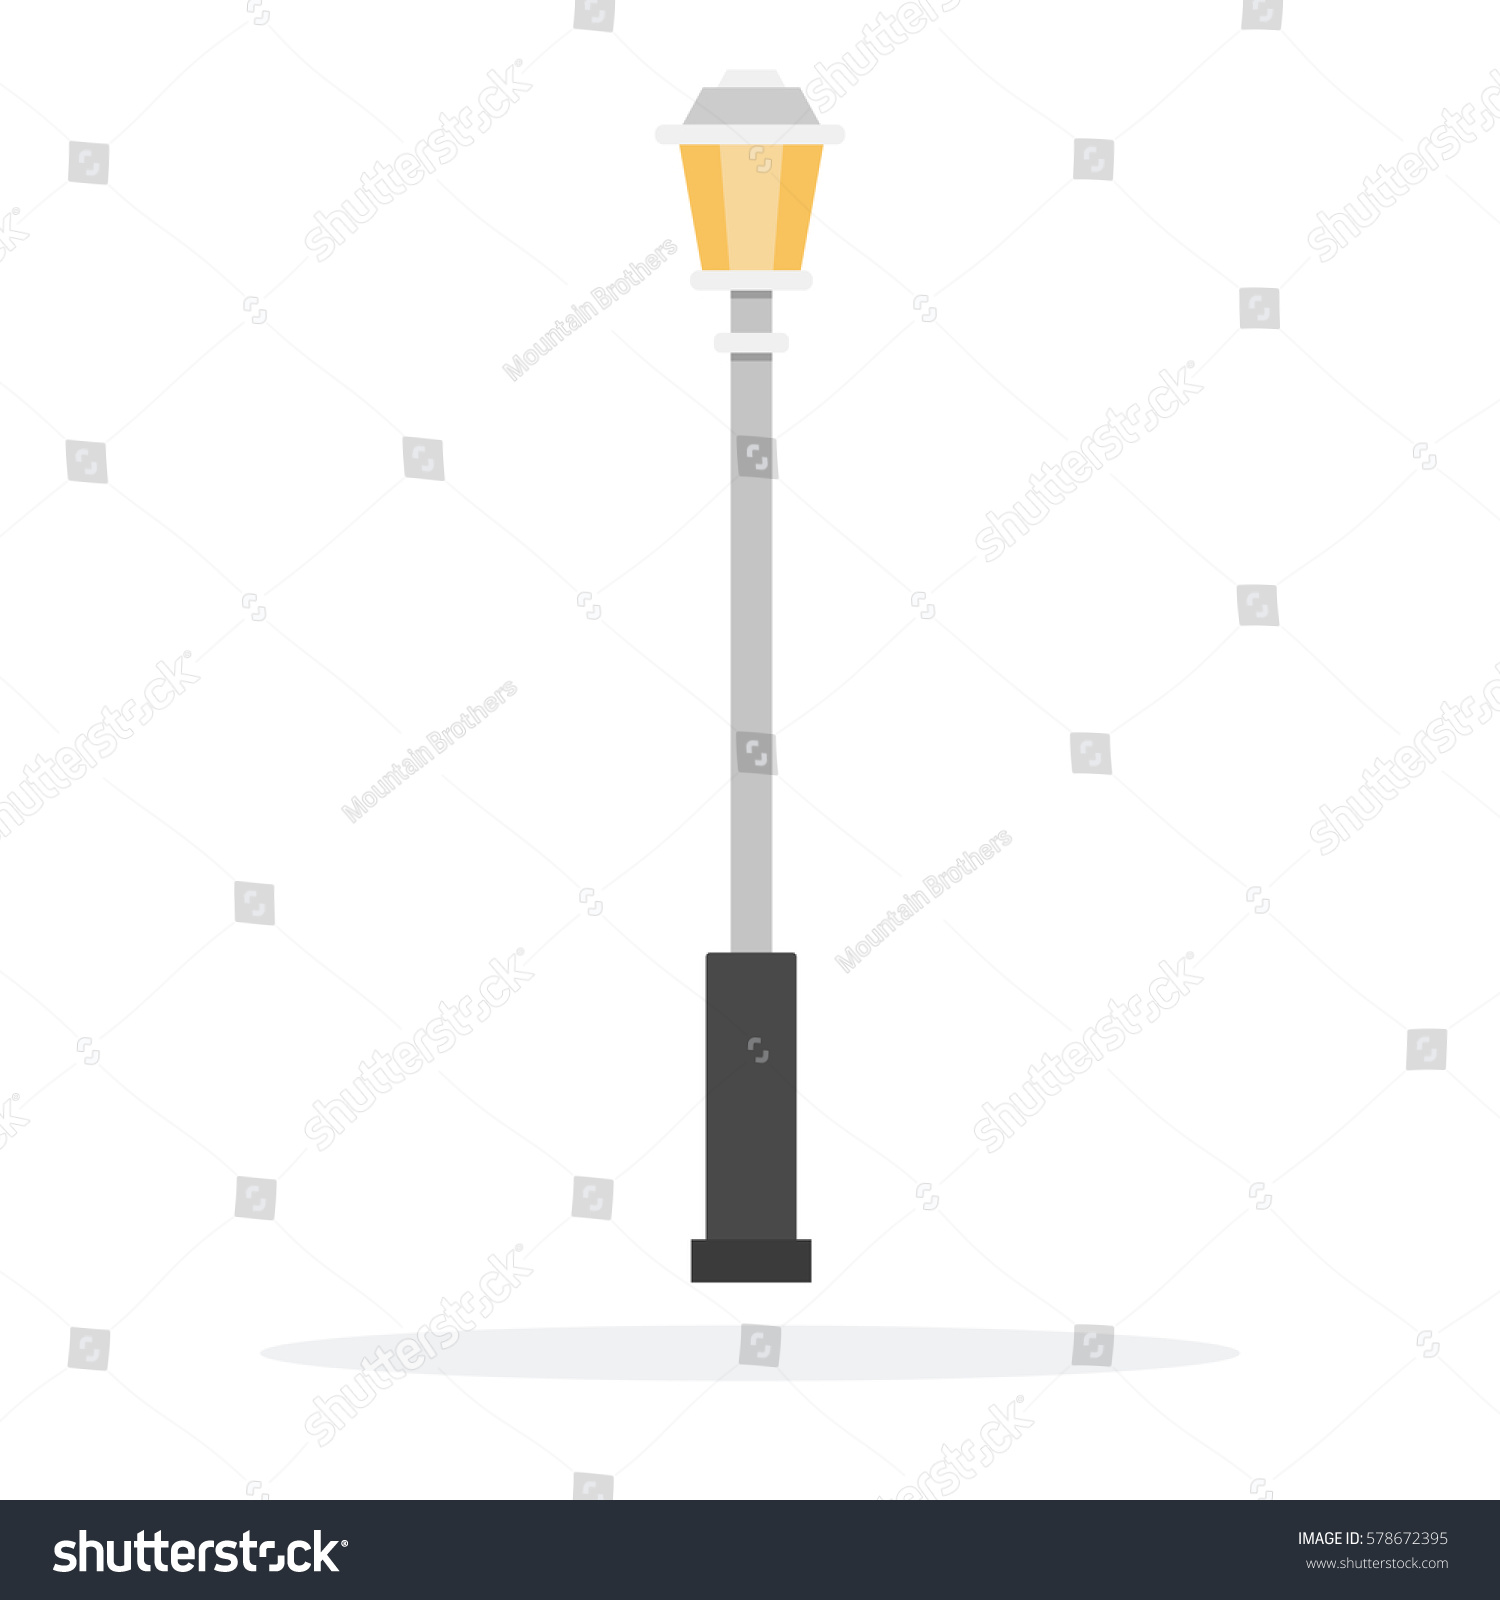 Lamp Post Vector Flat Material Design Stock Vector 578672395 ... for Street Lamp Post Vector  53kxo